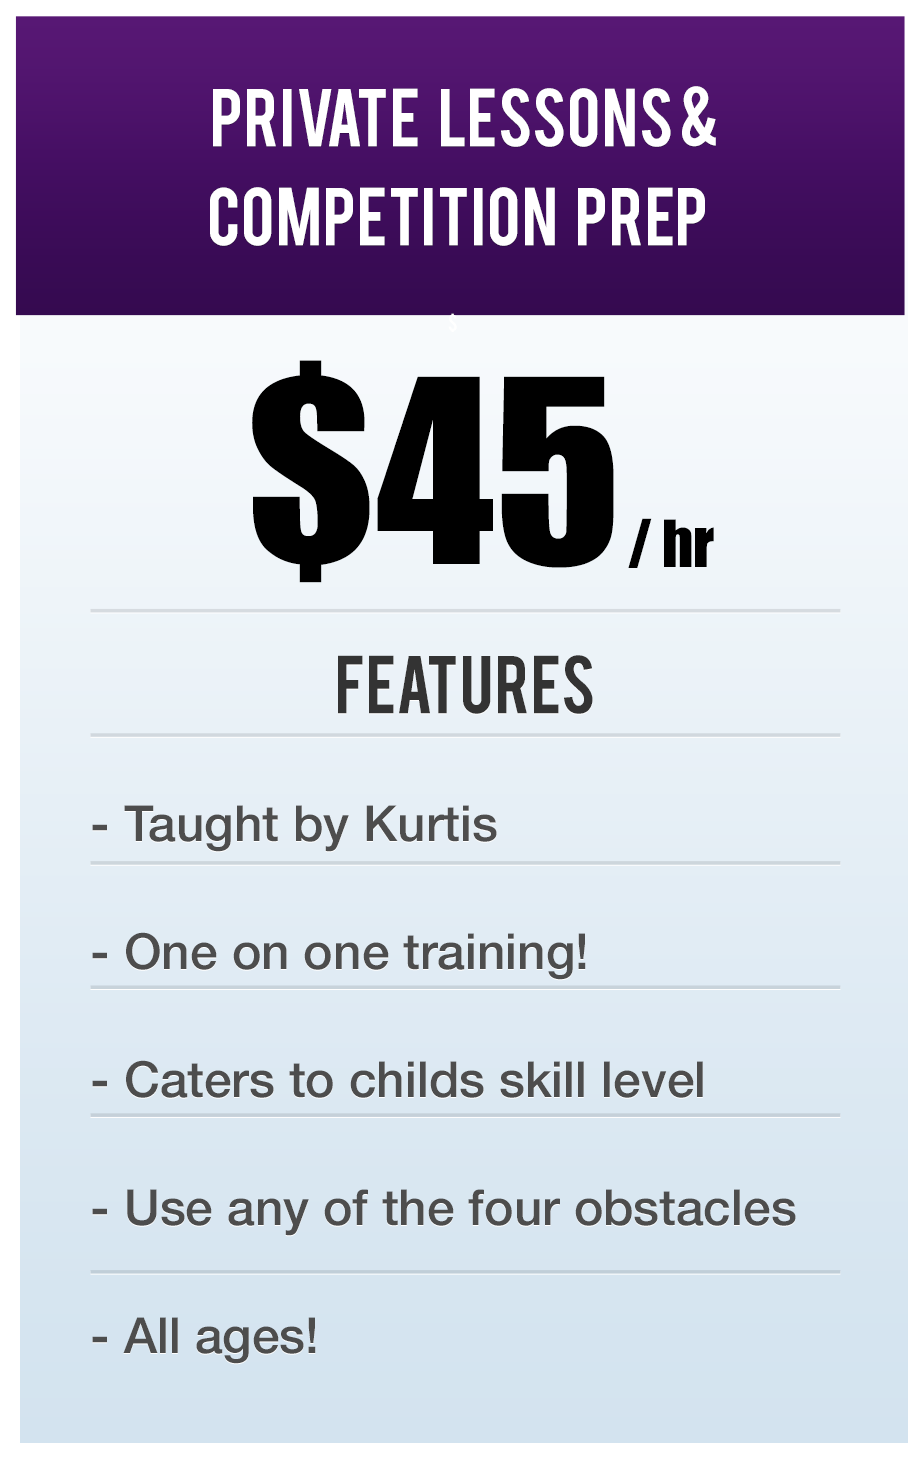 private lessons & Competition Prep! $45.00 per hour. Features: Taught by Kurtis. One on one training. Caters to child's skill level. Use any of the four obstacles. All ages!